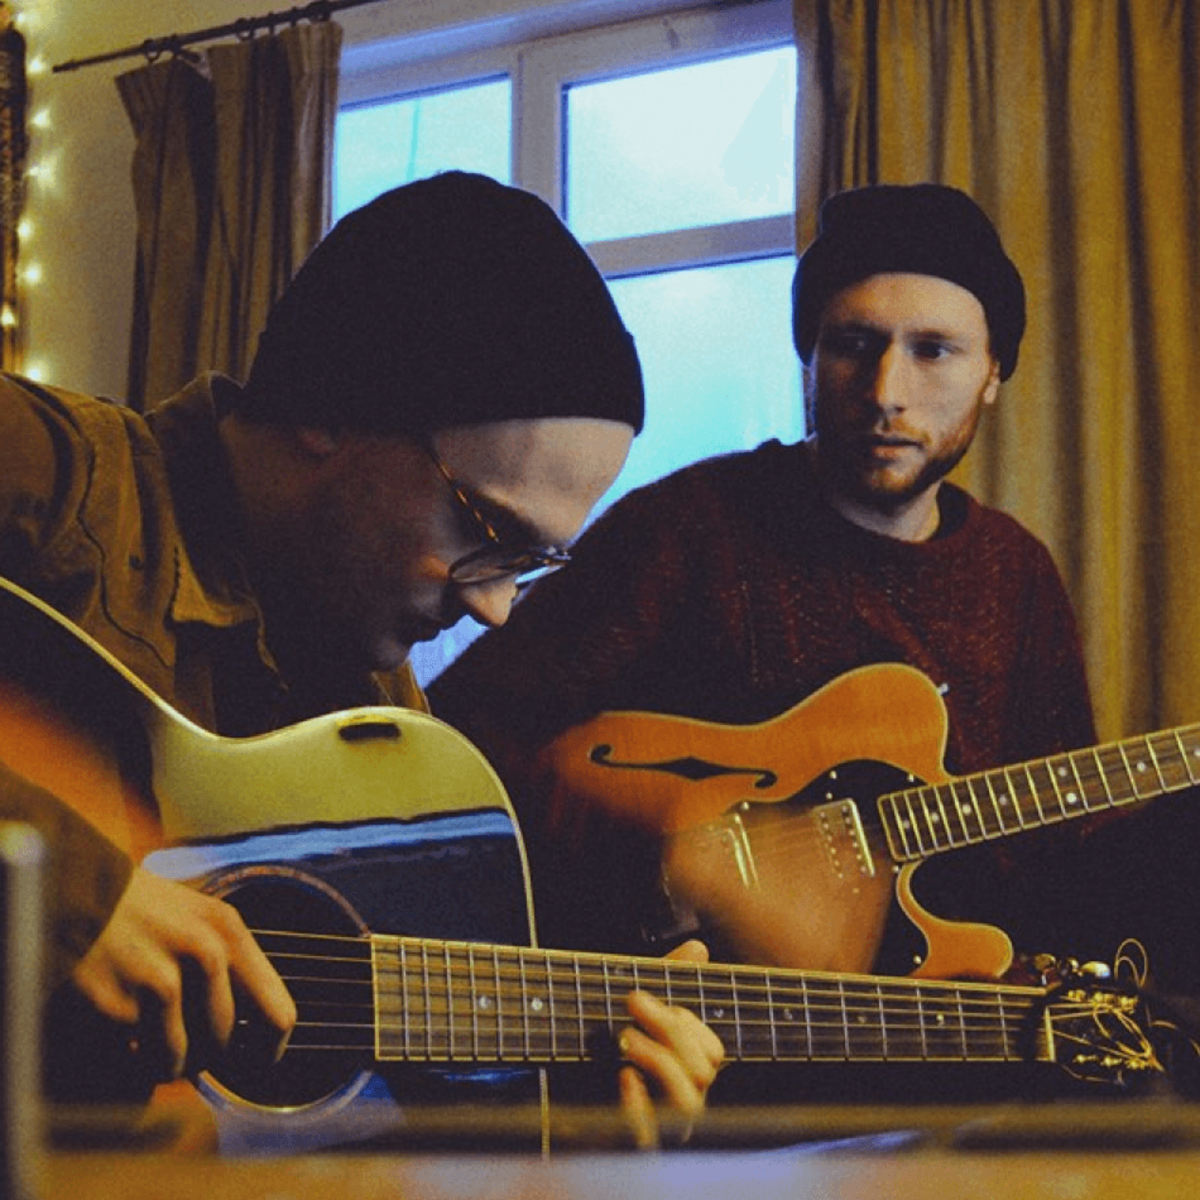 Articlehome novo amor and ed tullett alps on indie trendsetters social